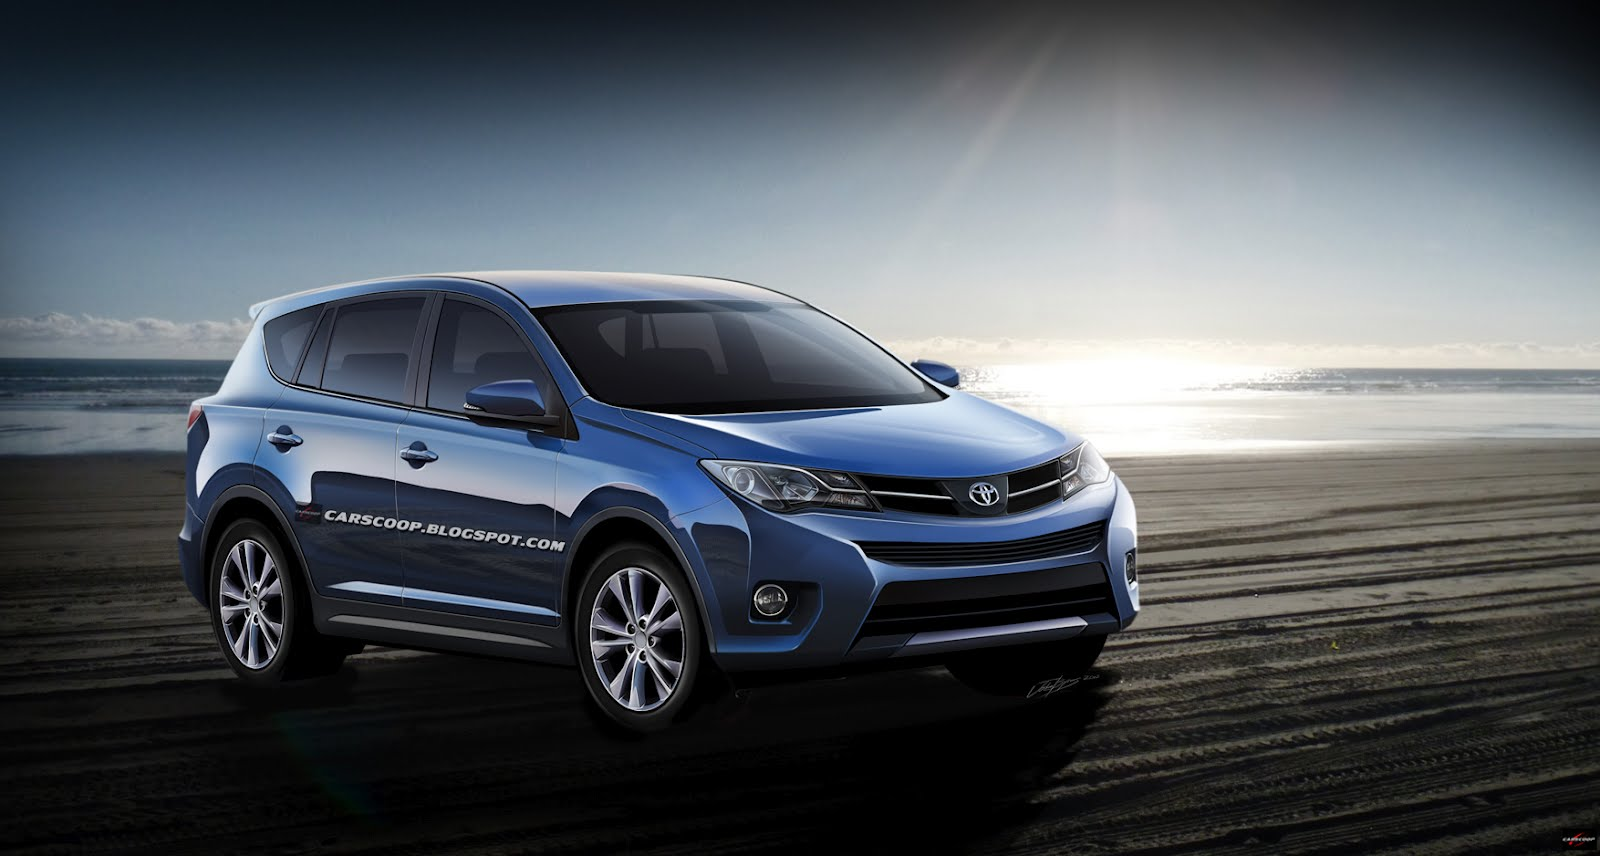 2013 toyota rav4 information and photos zombiedrive. Black Bedroom Furniture Sets. Home Design Ideas